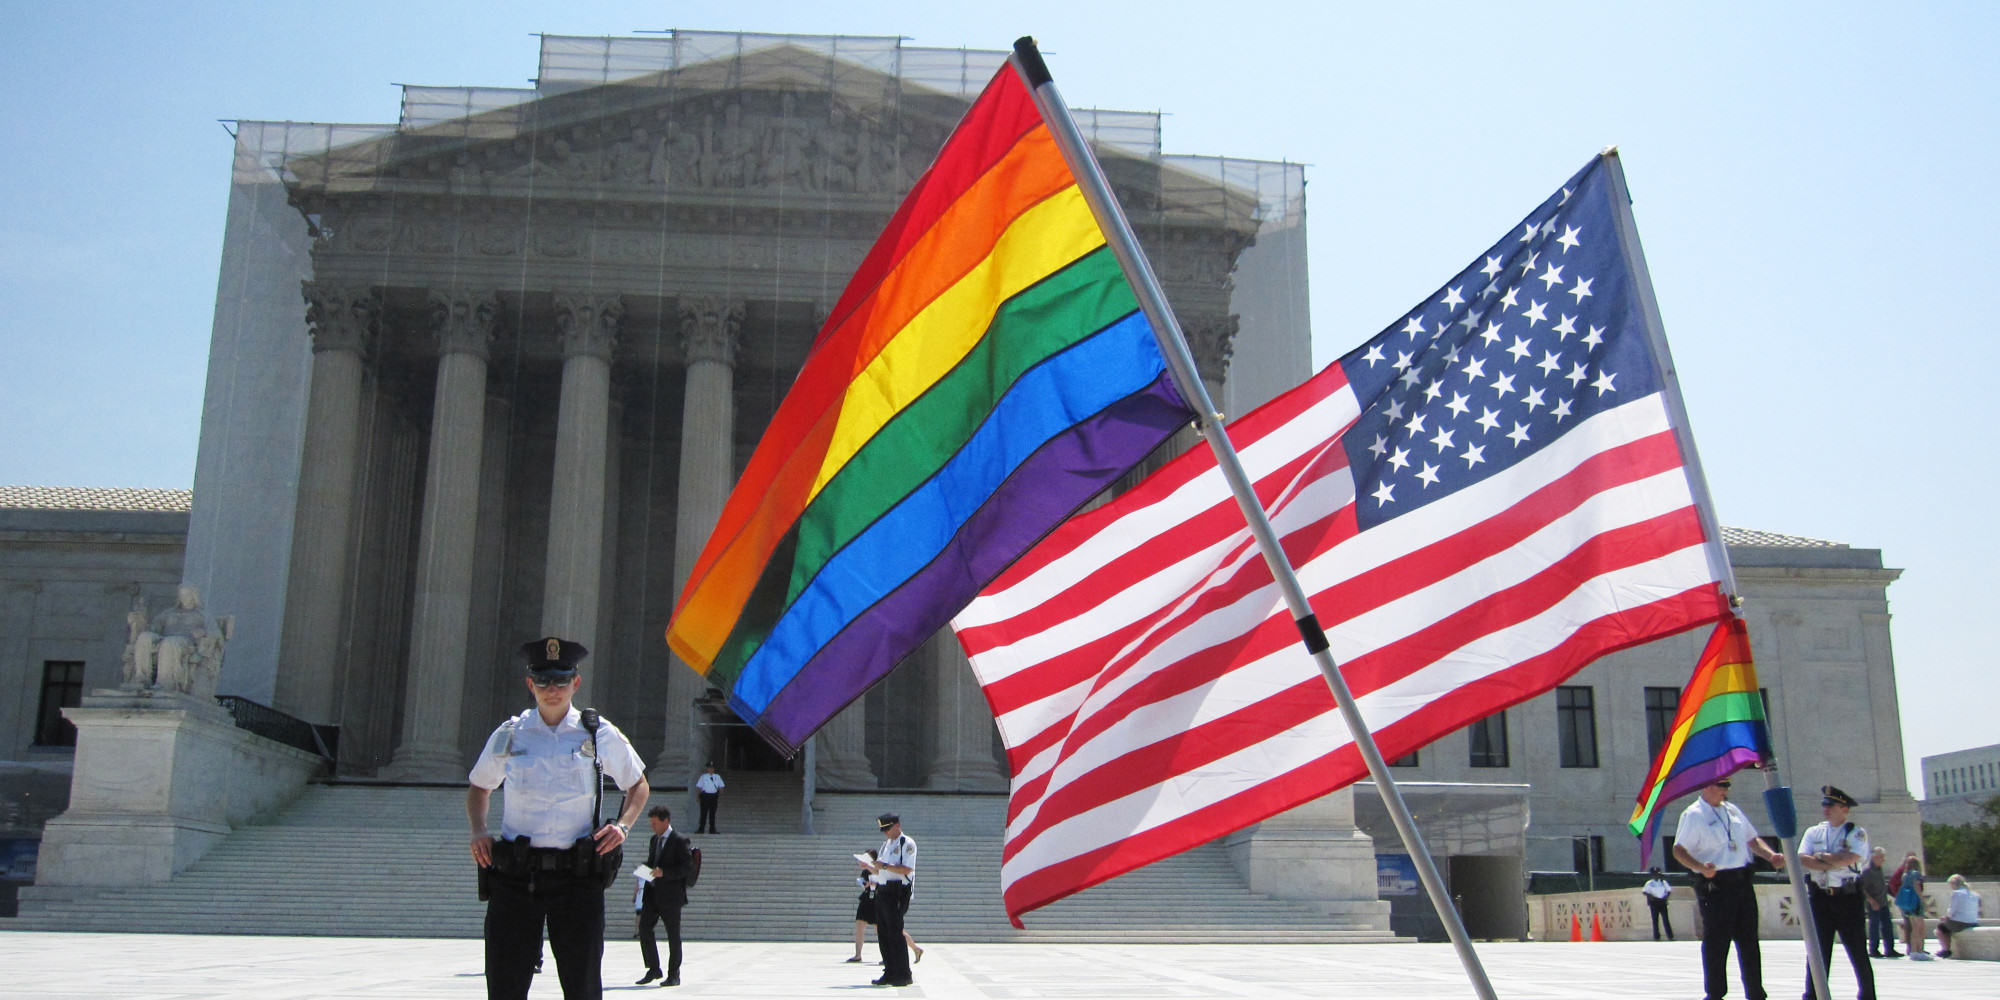 To Avoid Gay Marriage Parts Of Alabama Have Actually Banned Weddings Altogether us gay marriage 1